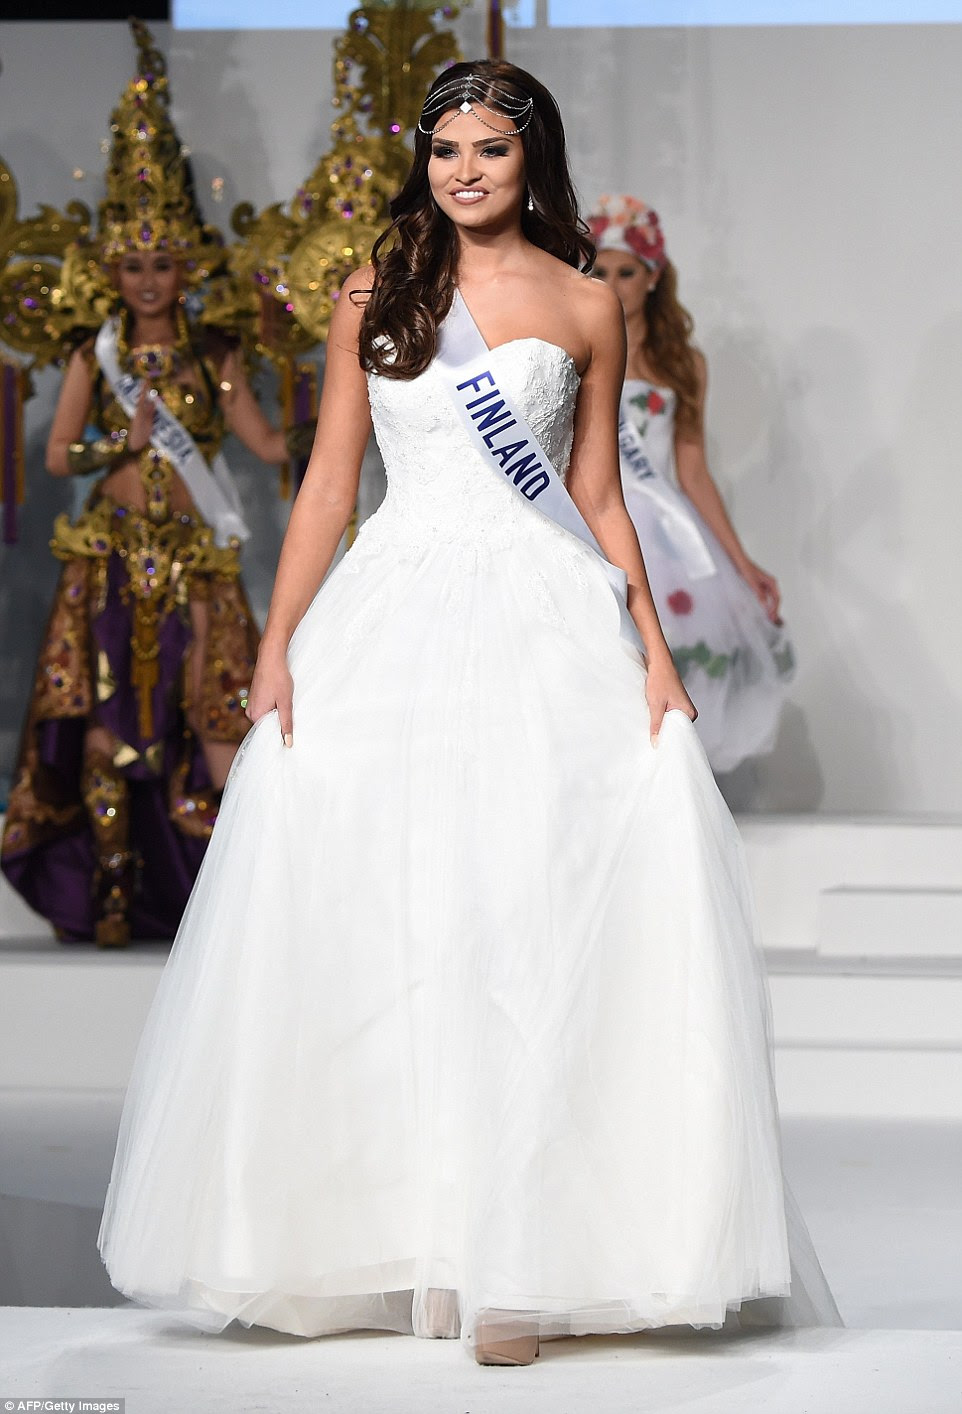 Miss FinlandSaara Ahlberg looked like she was expecting a groom to be at the end of the catwalk as she appeared in this wedding dress style gown and wearing a diamante tiara